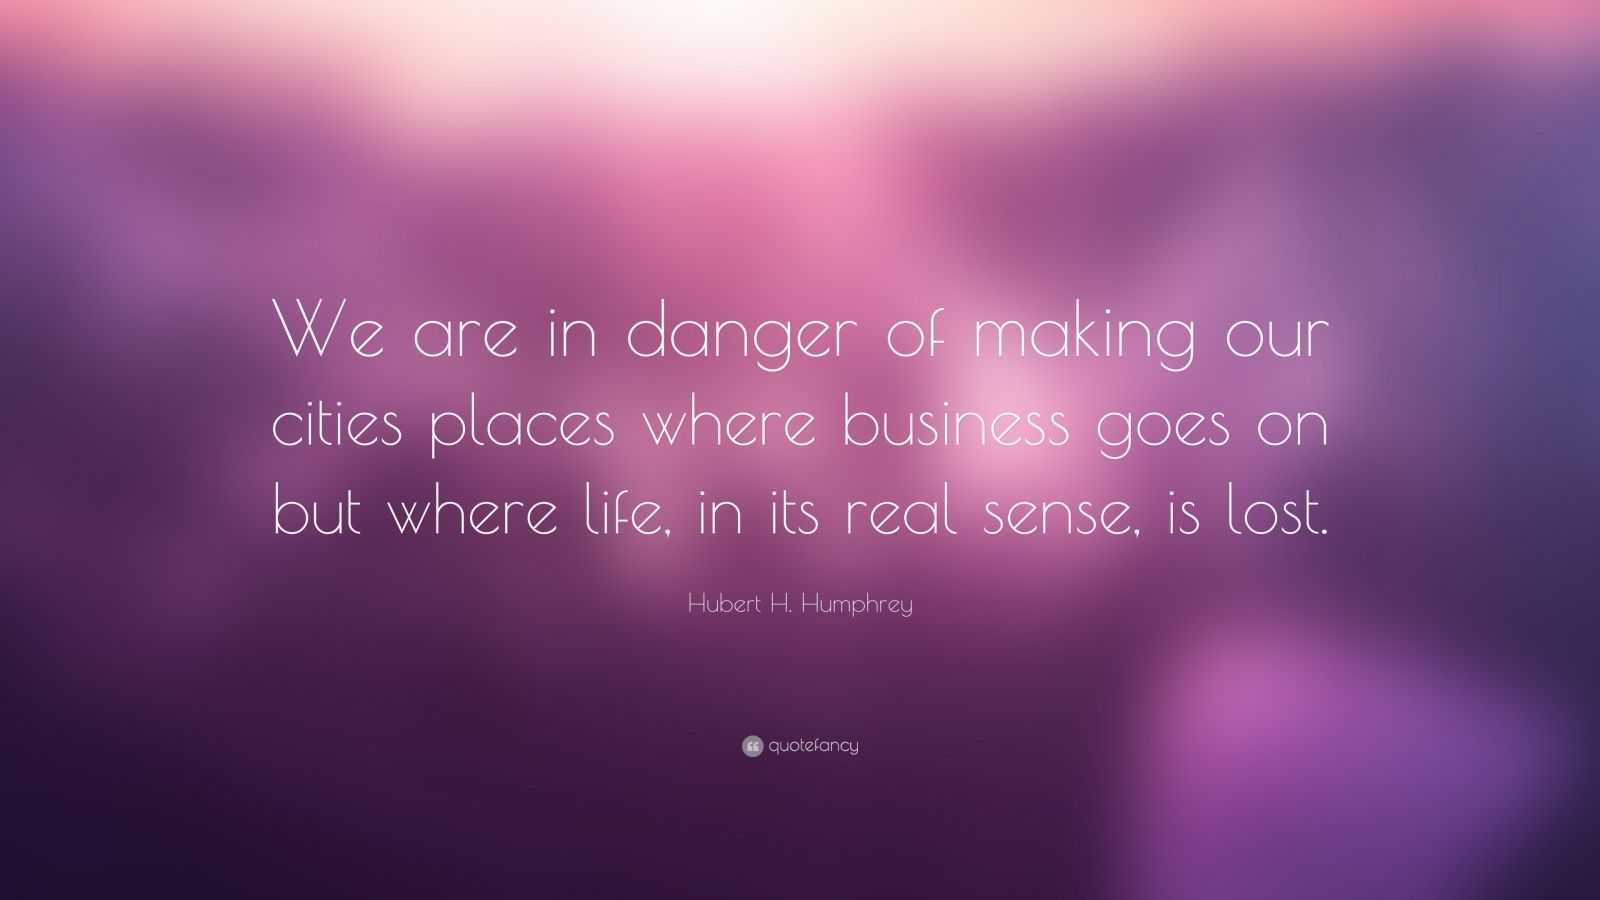 """Hubert H. Humphrey Quote: """"We are in danger of making our cities places where business goes on but where life, in its real sense, is lost."""""""